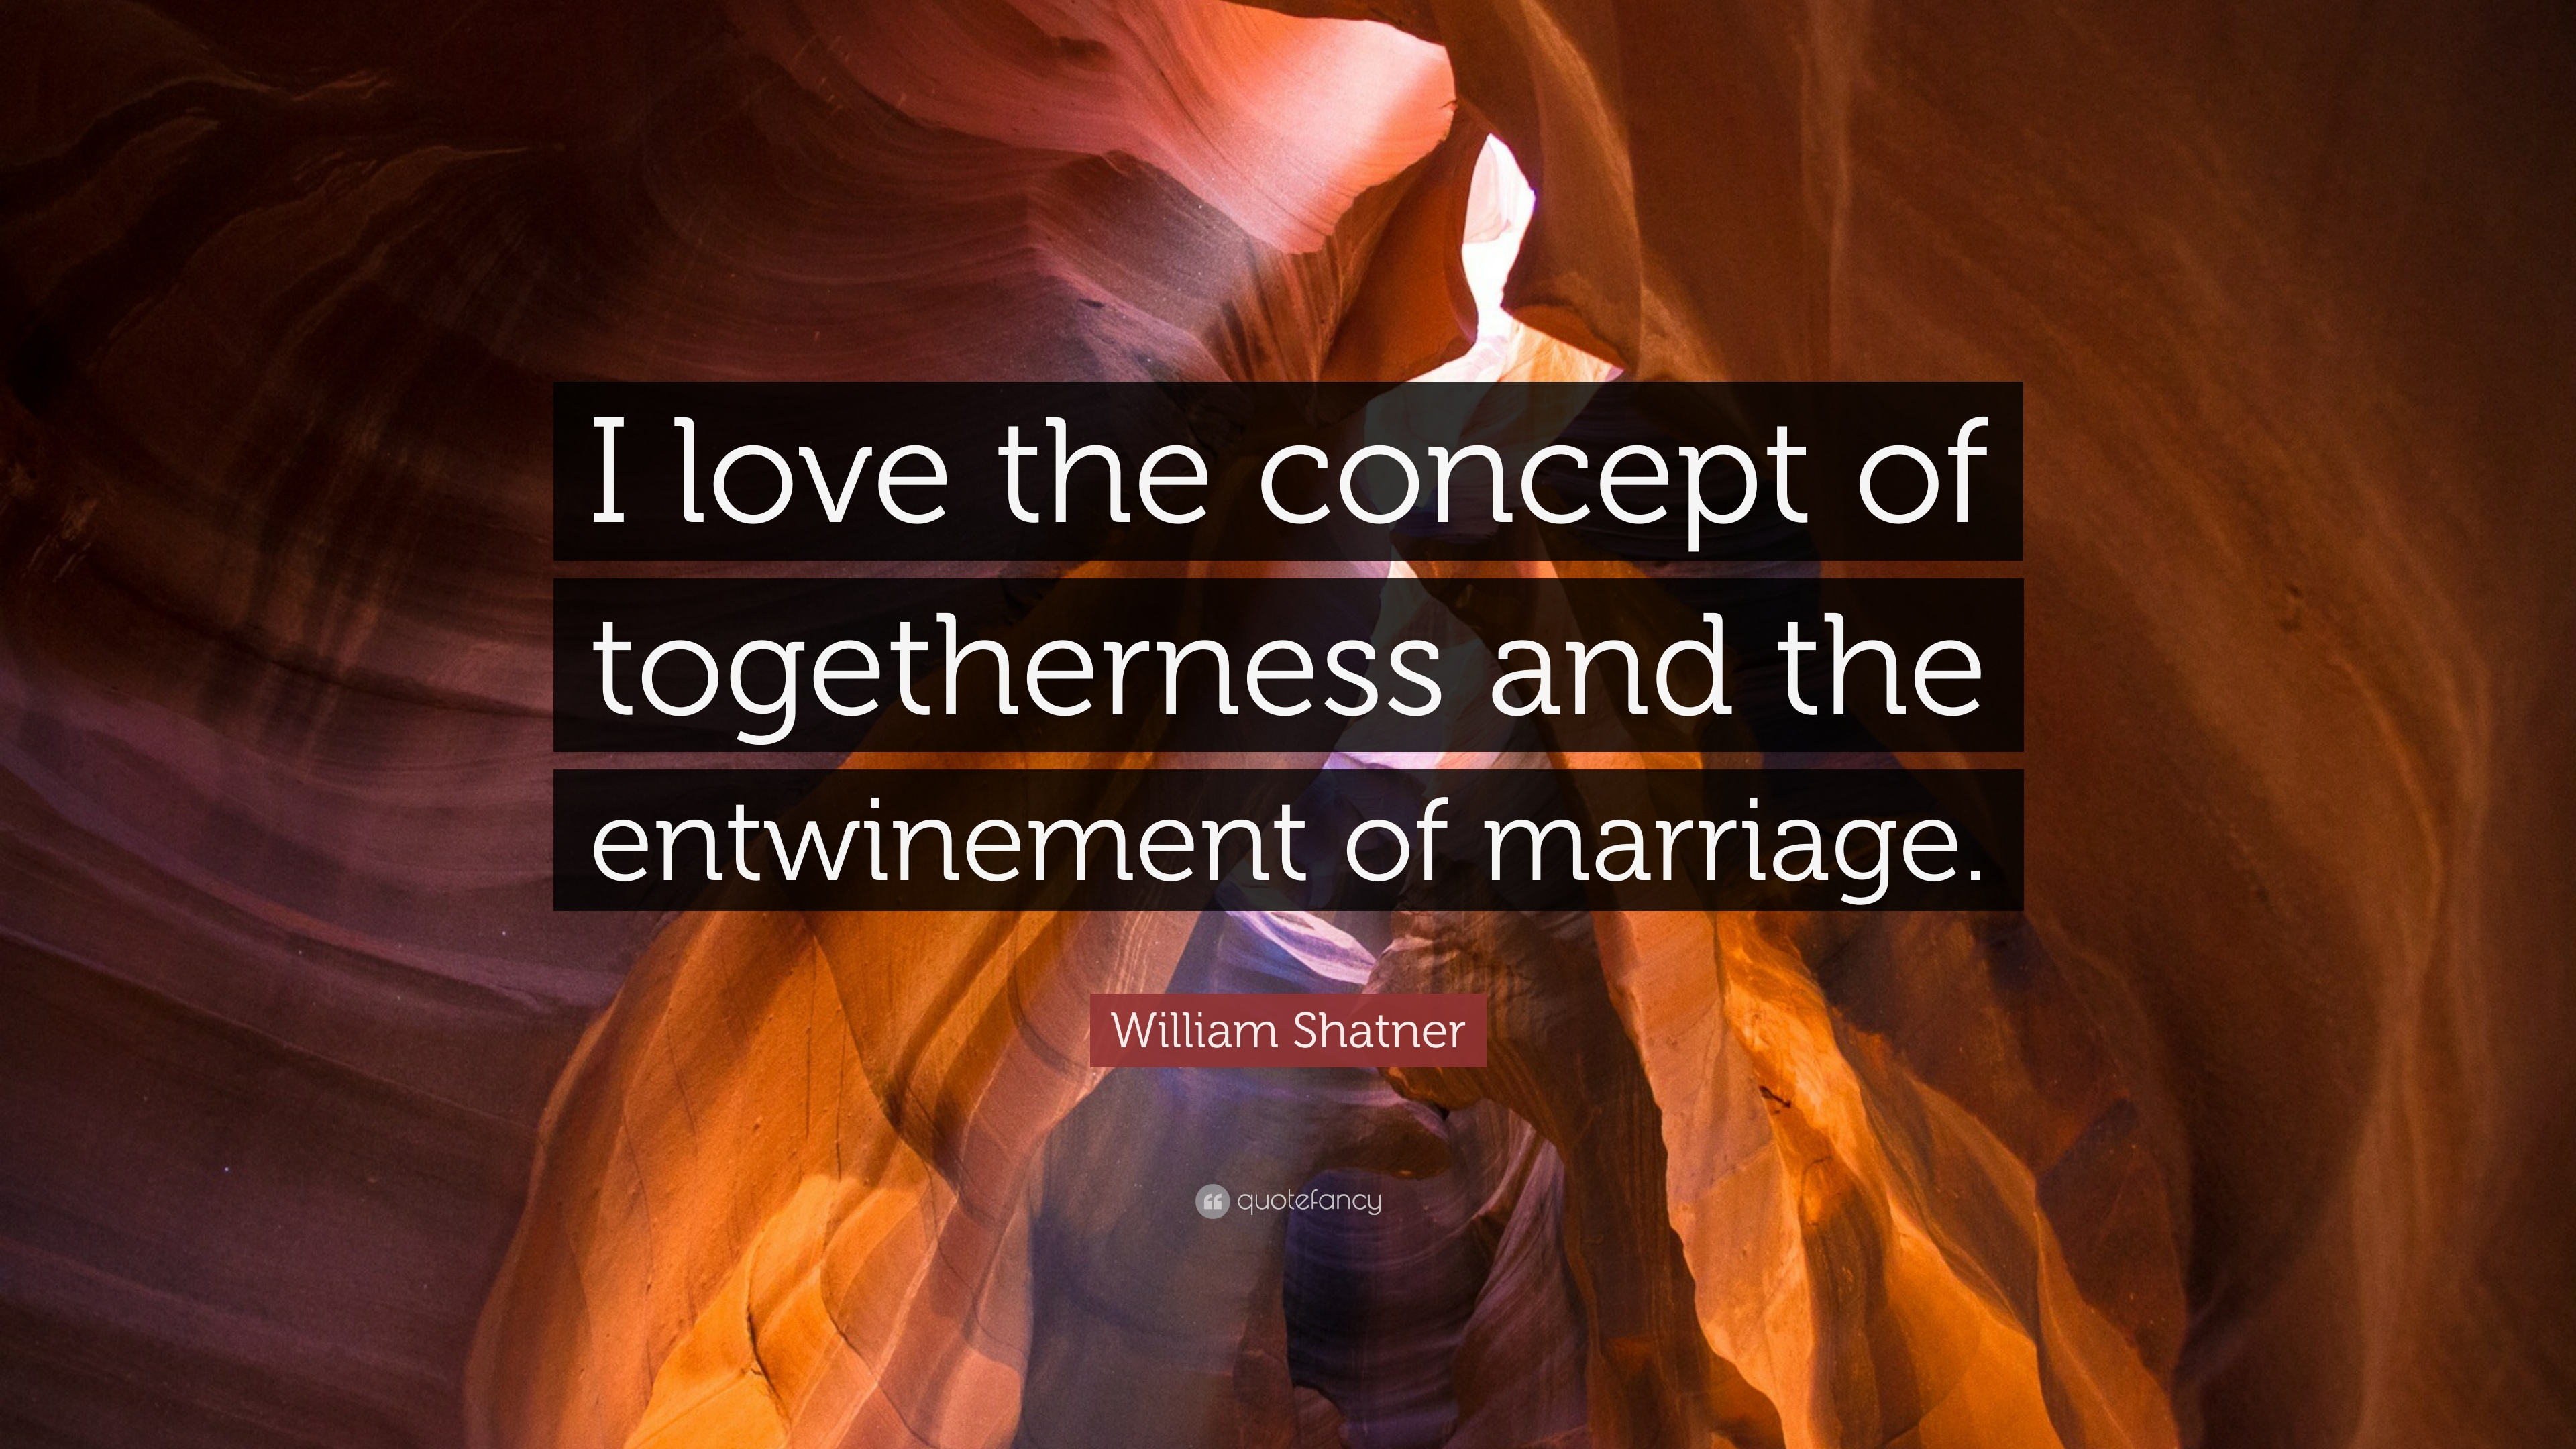 William Shatner Quote I Love The Concept Of Togetherness And The